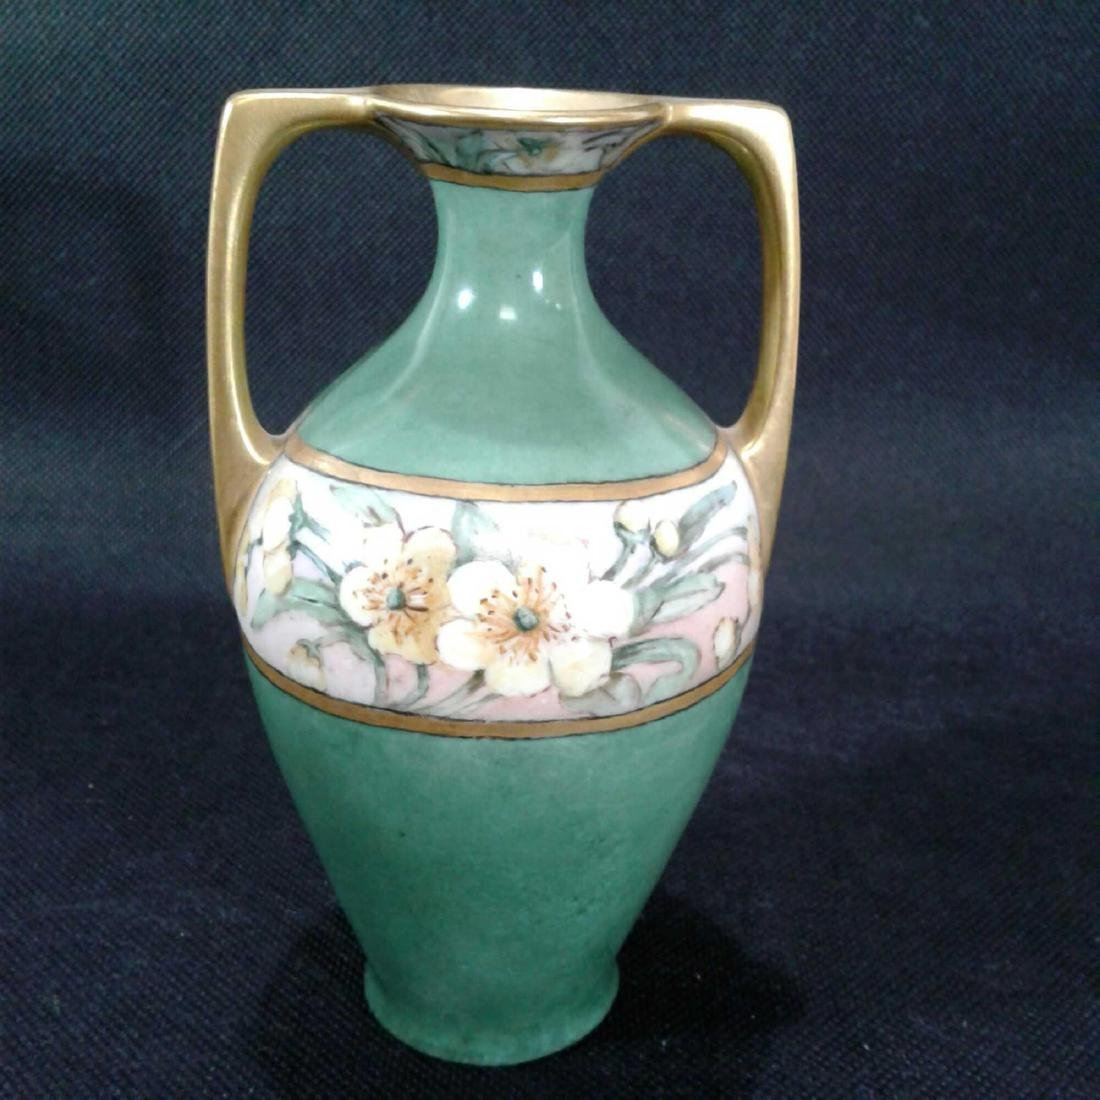 Signed Heise Green and Gold Flowered Vase